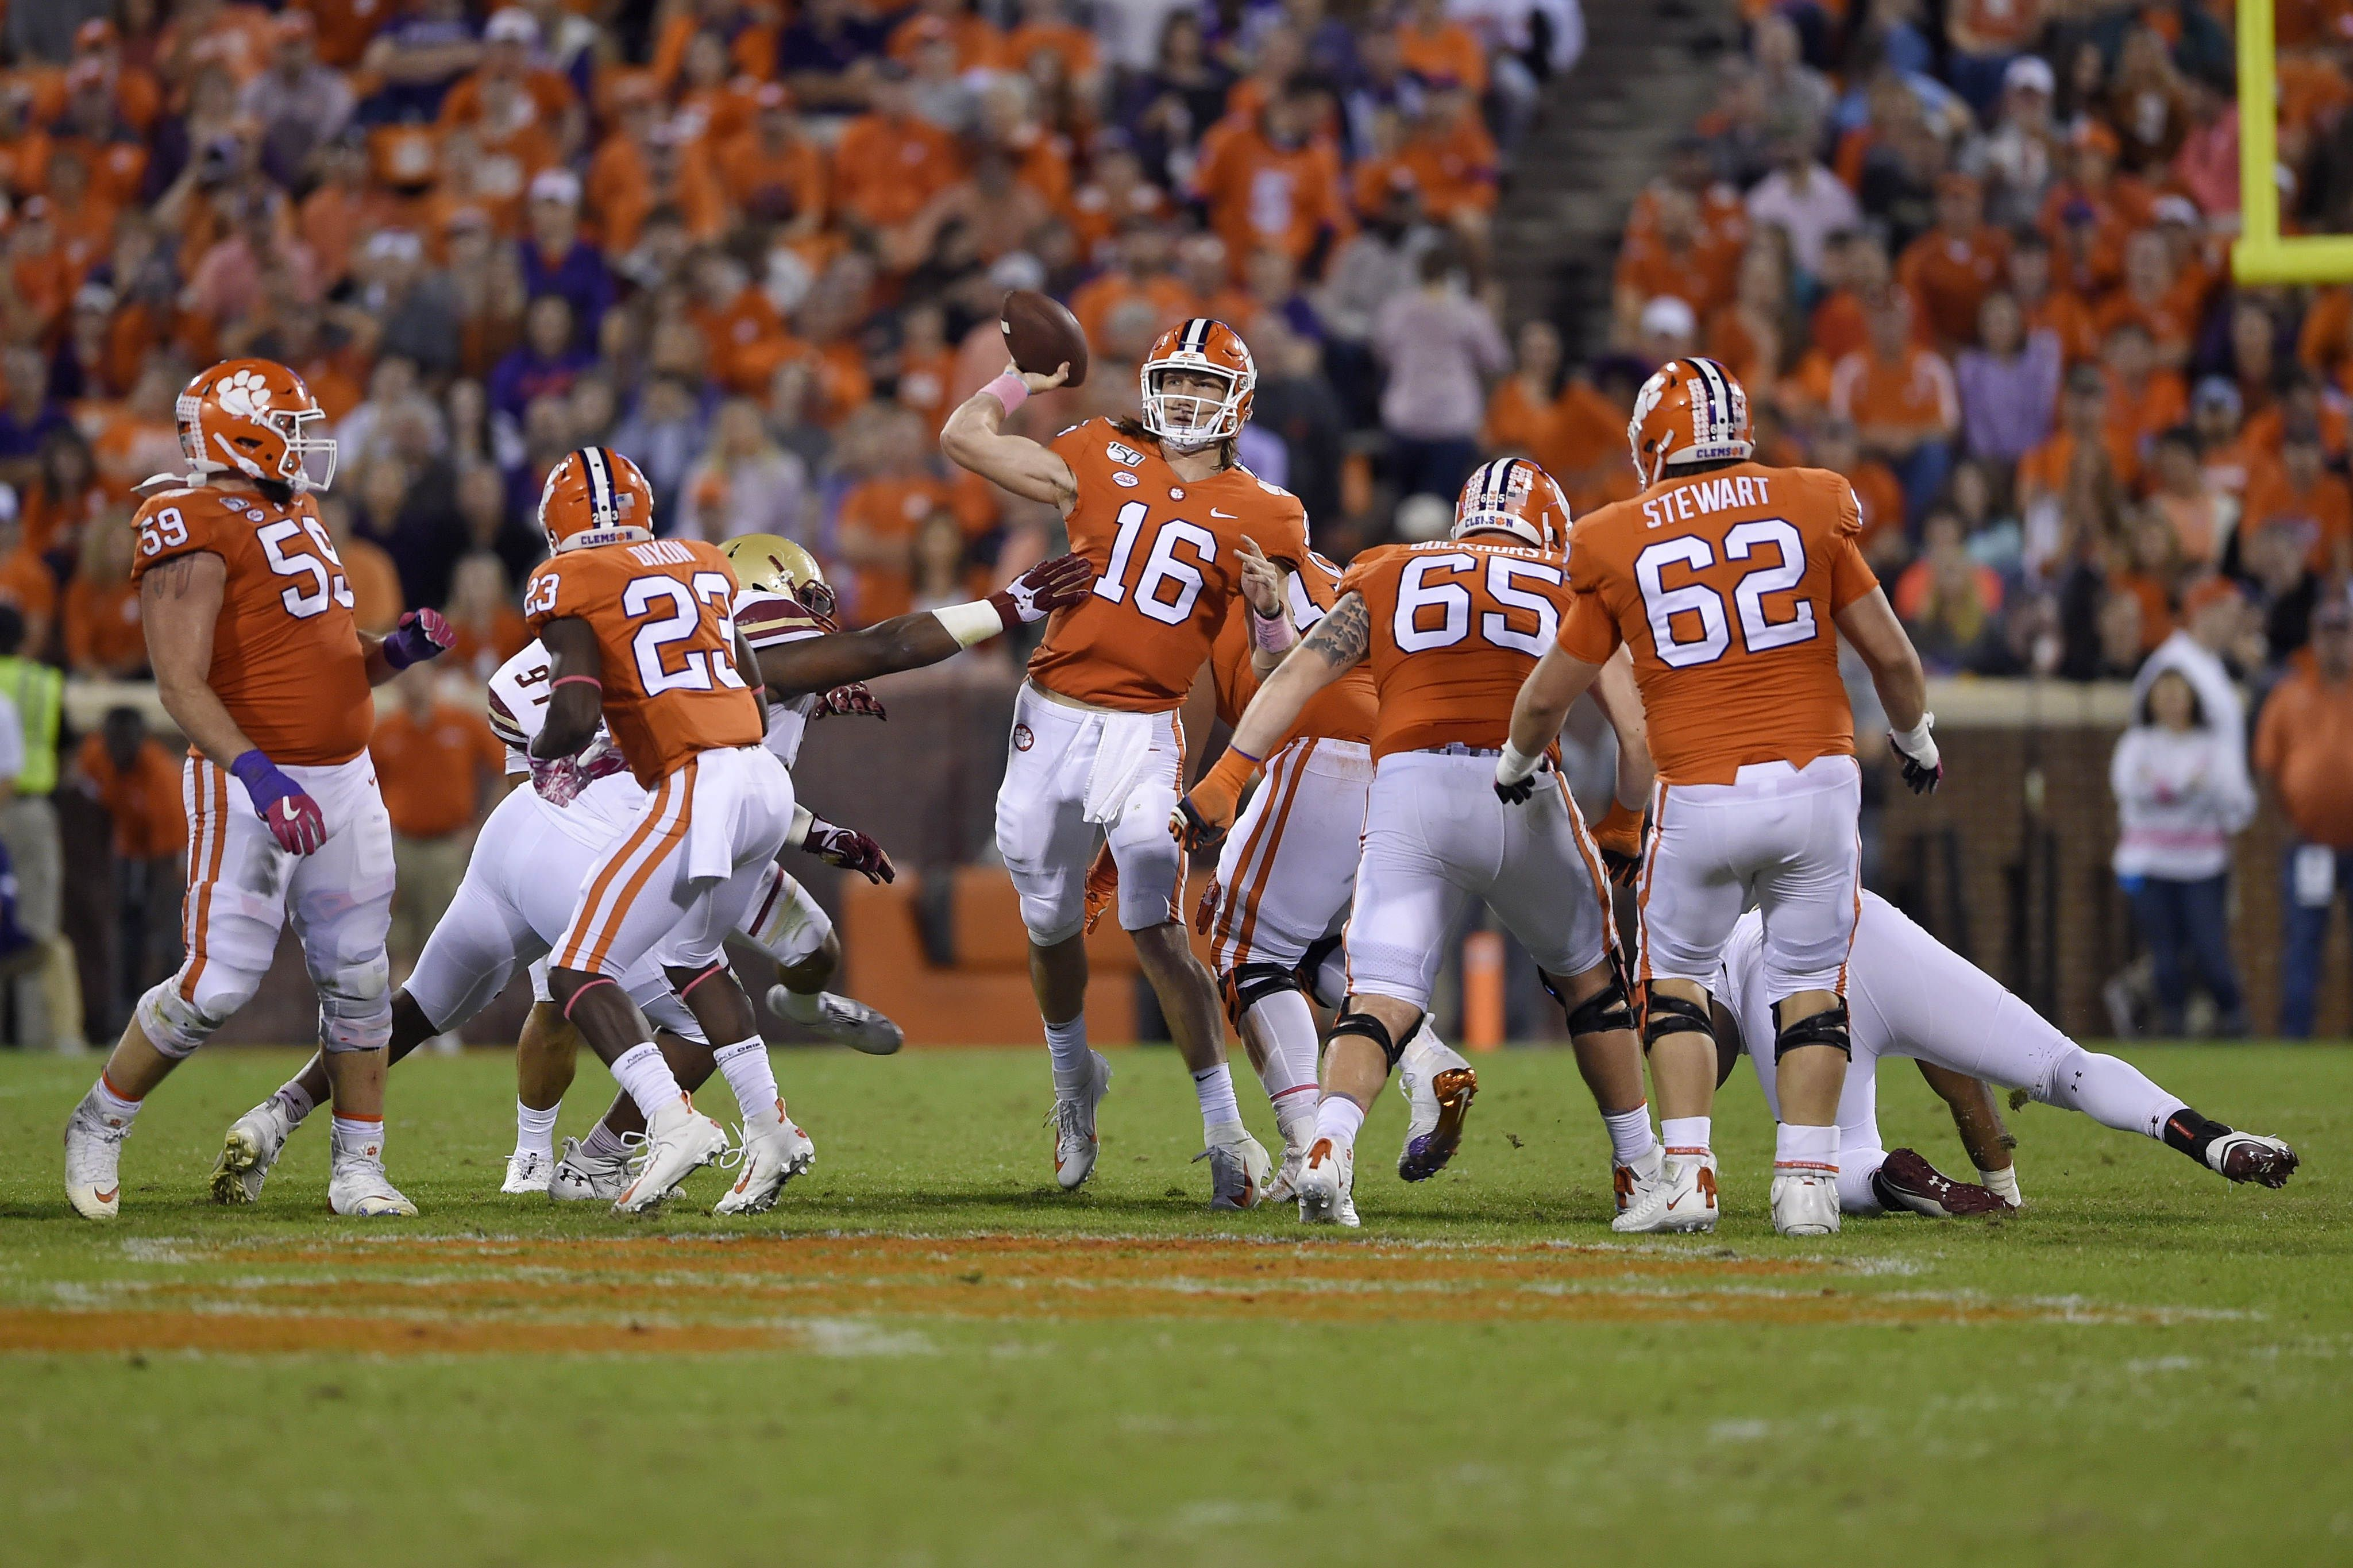 Wofford Vs Clemson Live Stream 11 2 19 How To Watch Acc